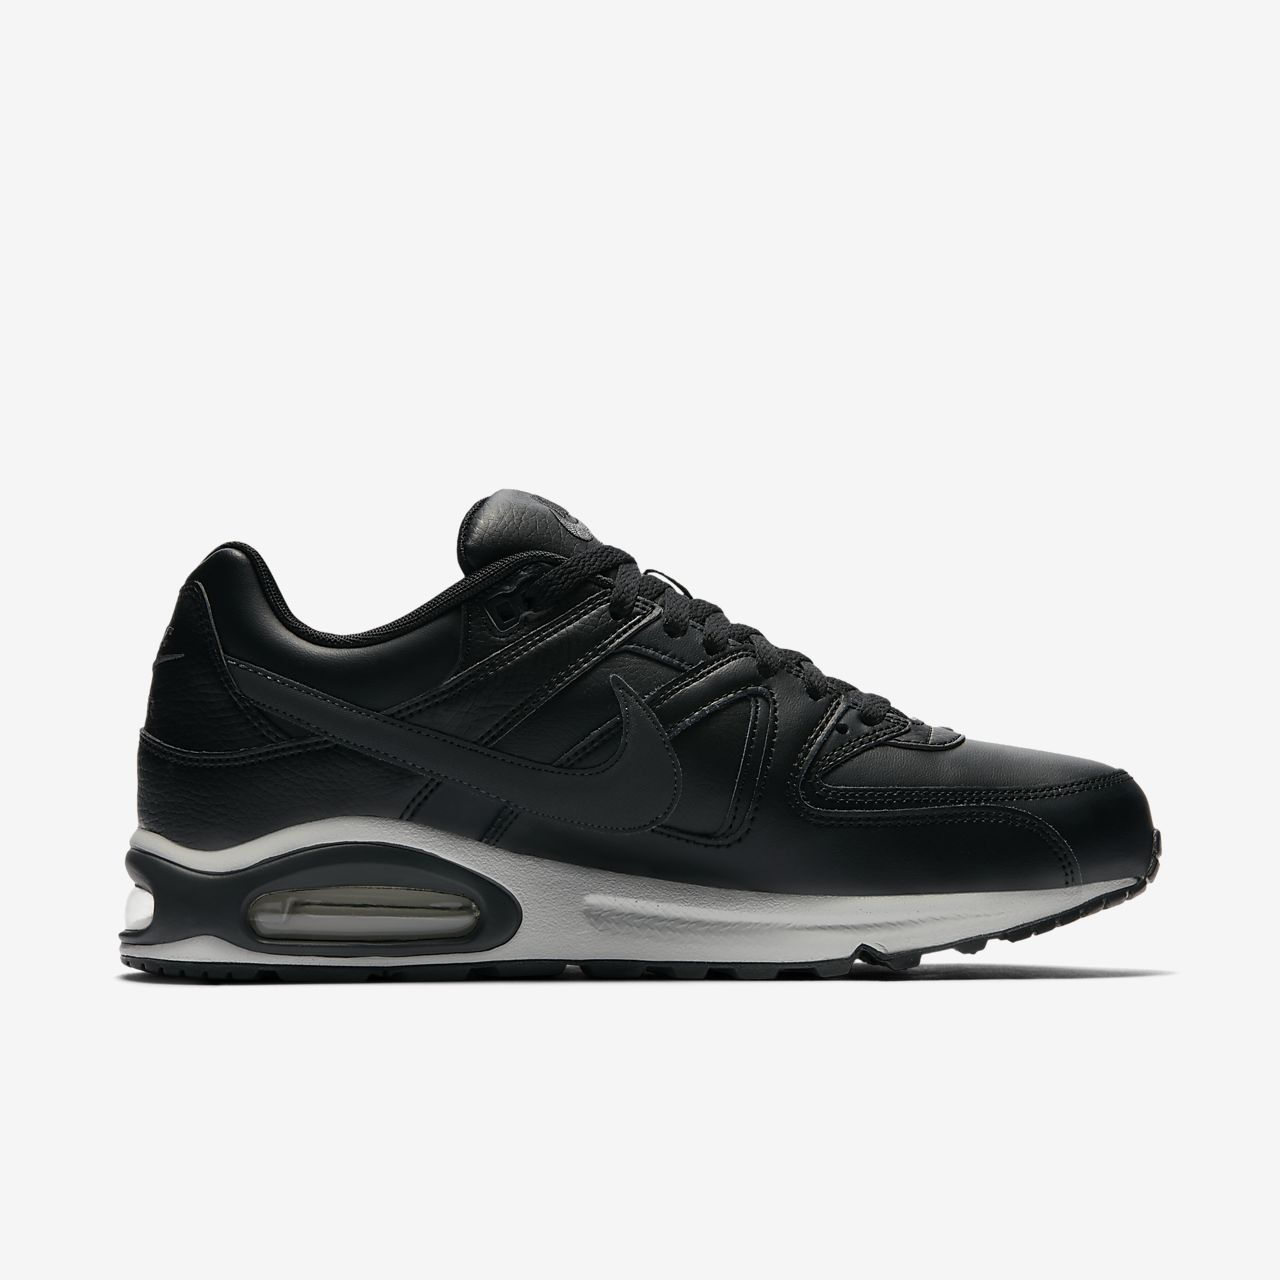 sports shoes fd0a2 242a4 Chaussure pour Homme. Nike Air Max Command